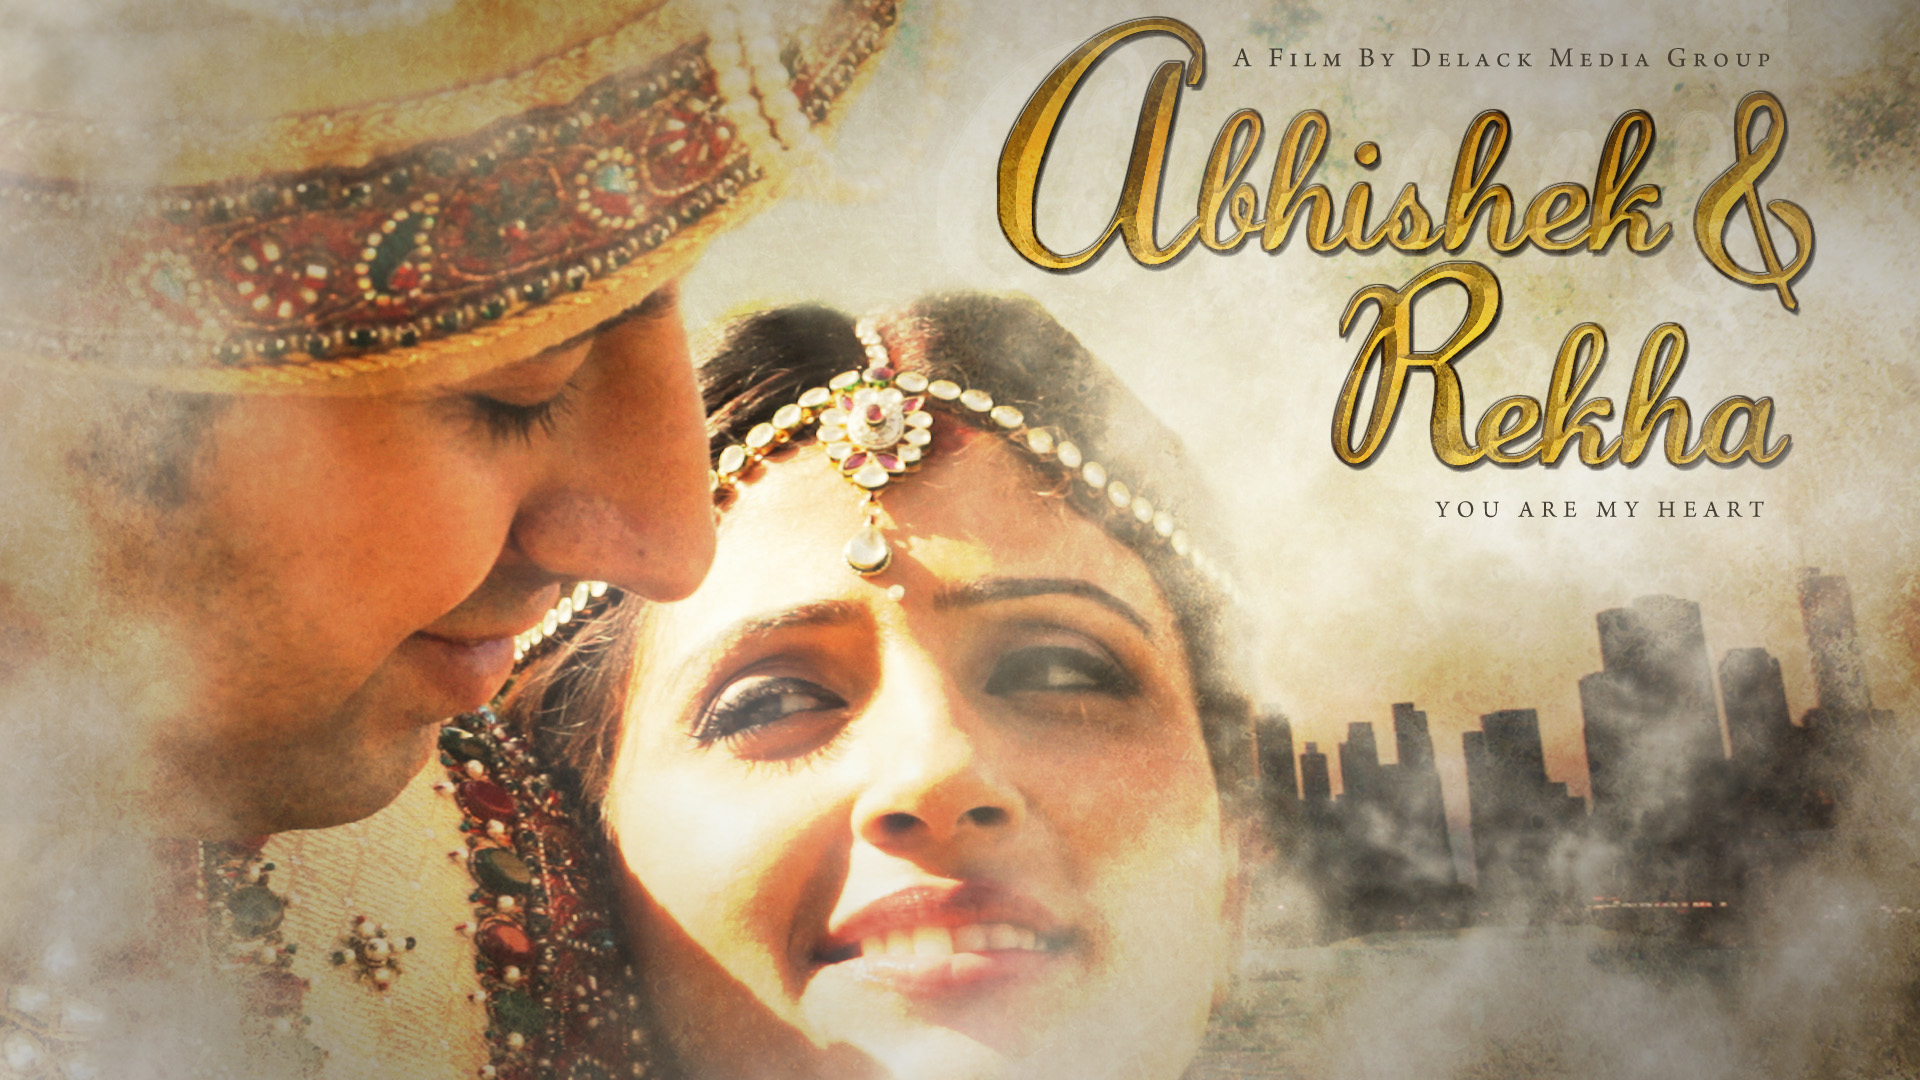 Abhishek Rekha Wedding Video Poster